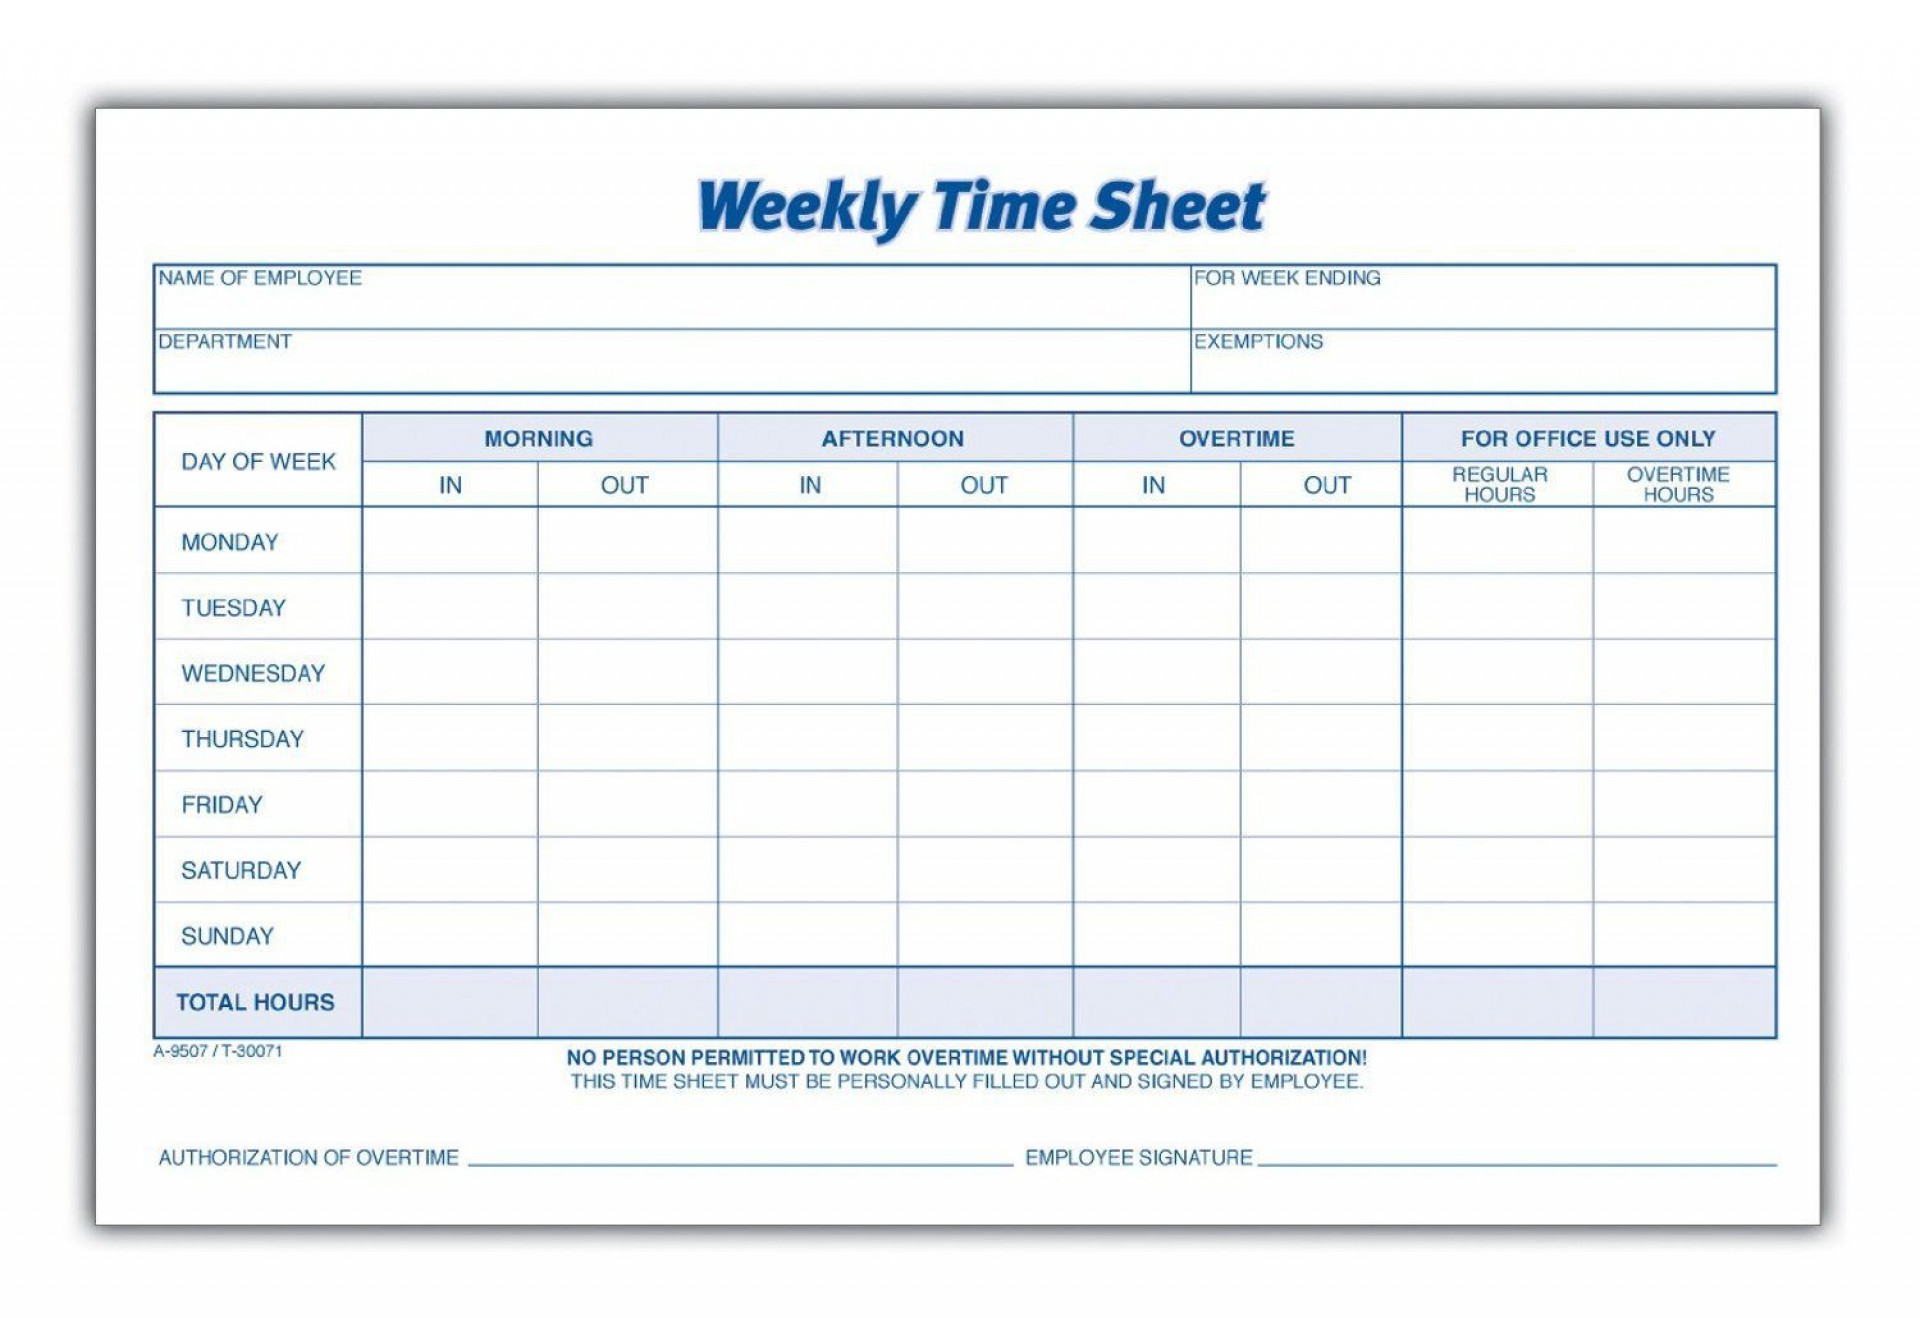 000 Awful Employee Time Card Sample Picture  Free Form Template1920